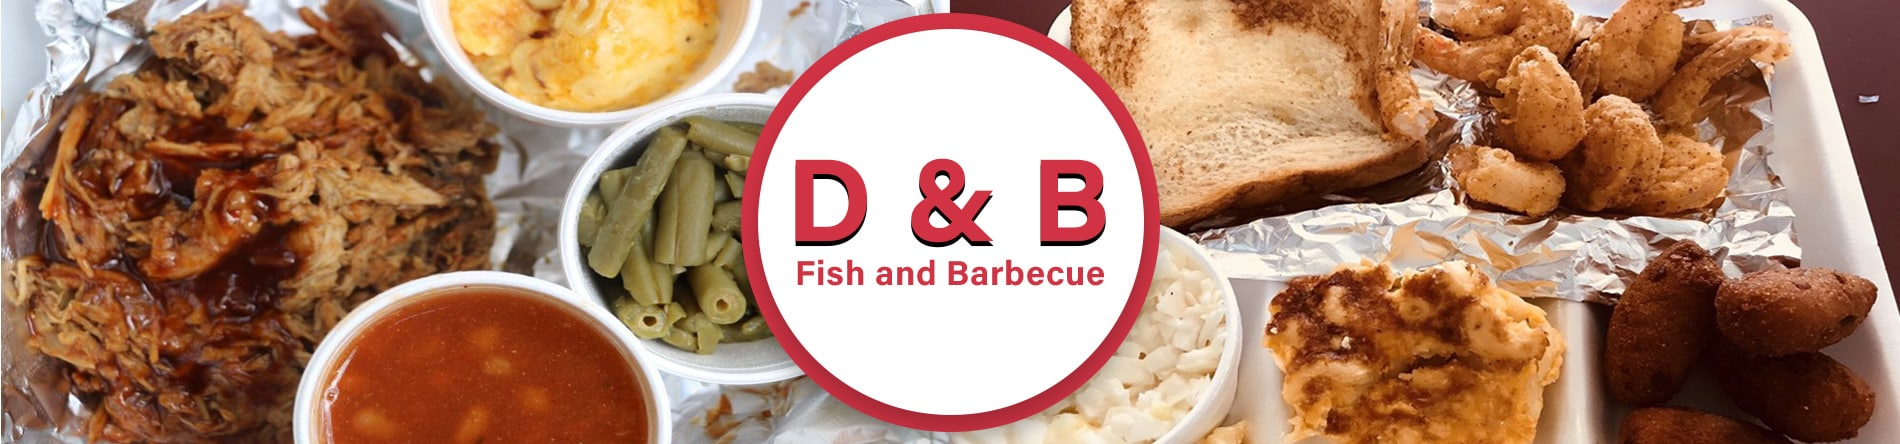 D&B Fish and Barbecue is a Soul Food Restaurant in ...